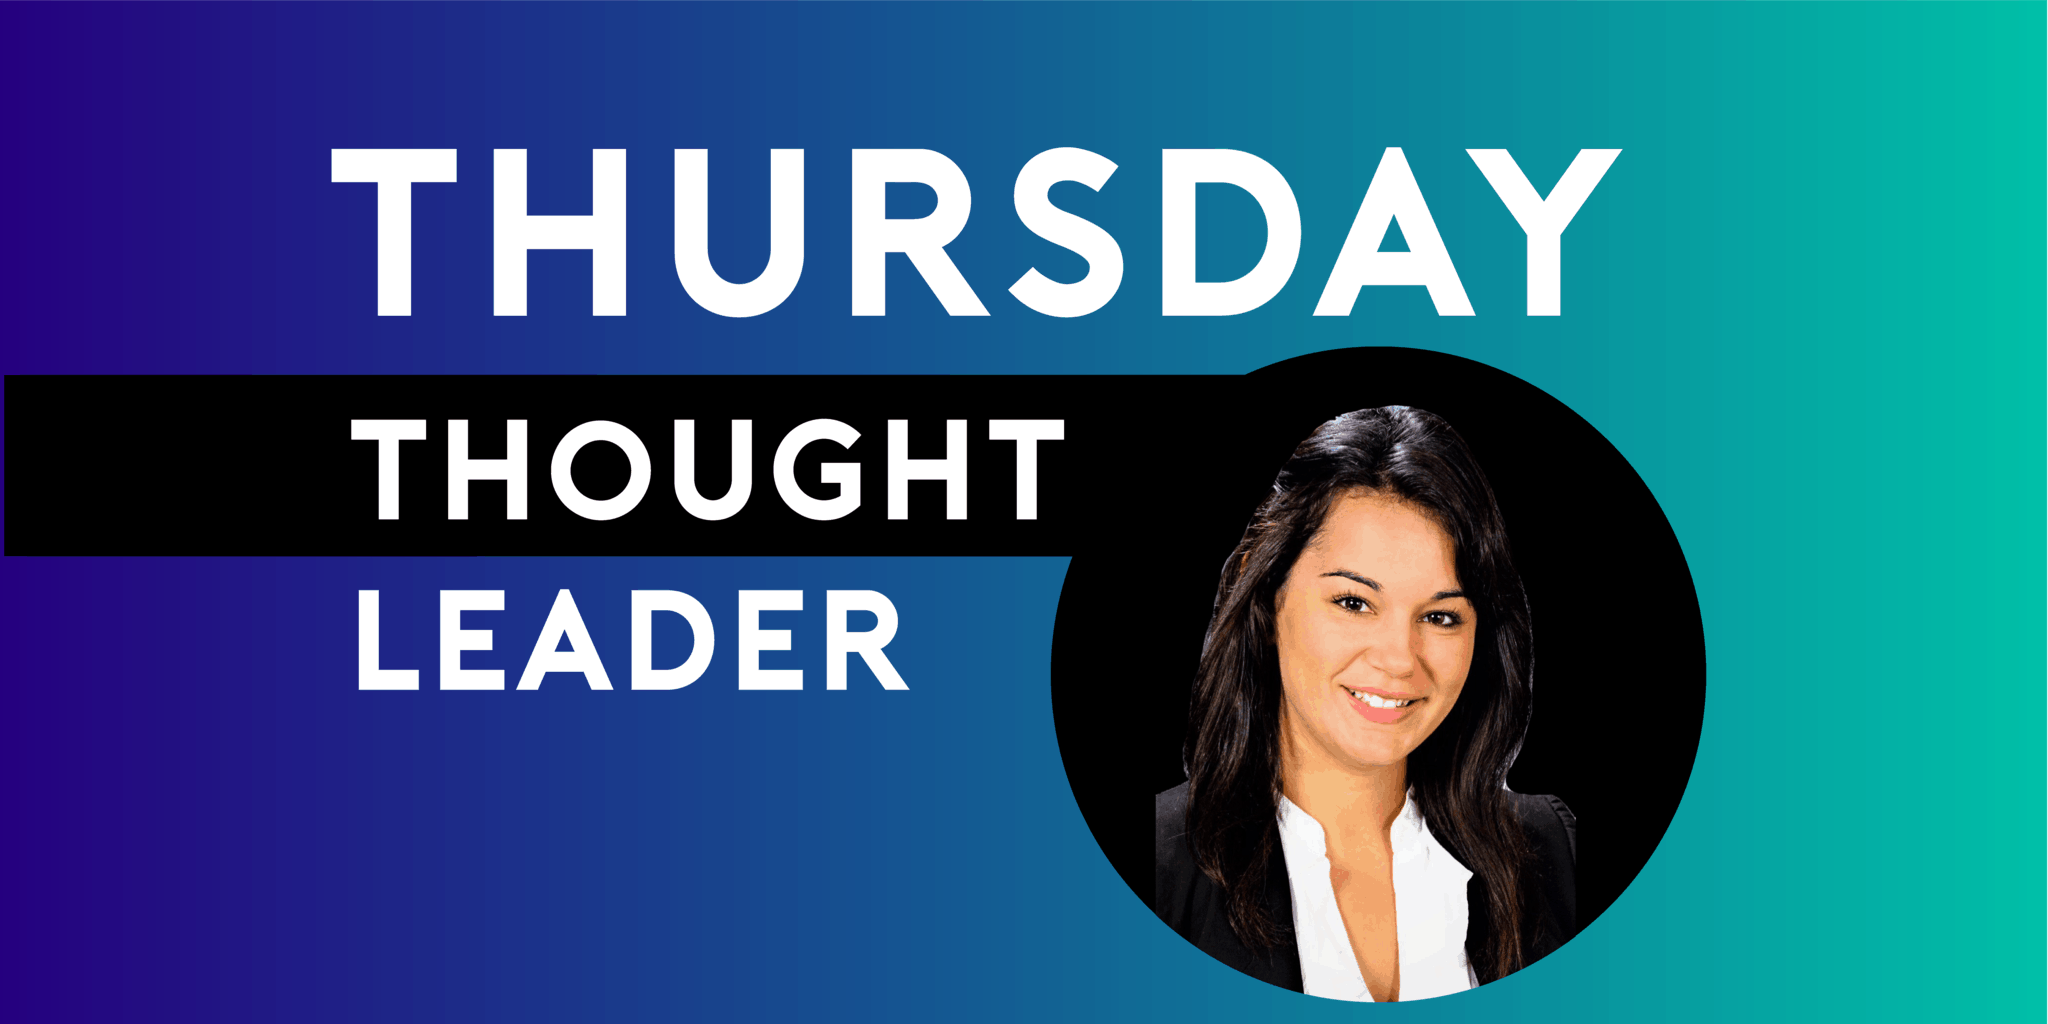 Aisha Monem Draznik of Cintas is this week's LegalNet Inc Thursday Thought Leader